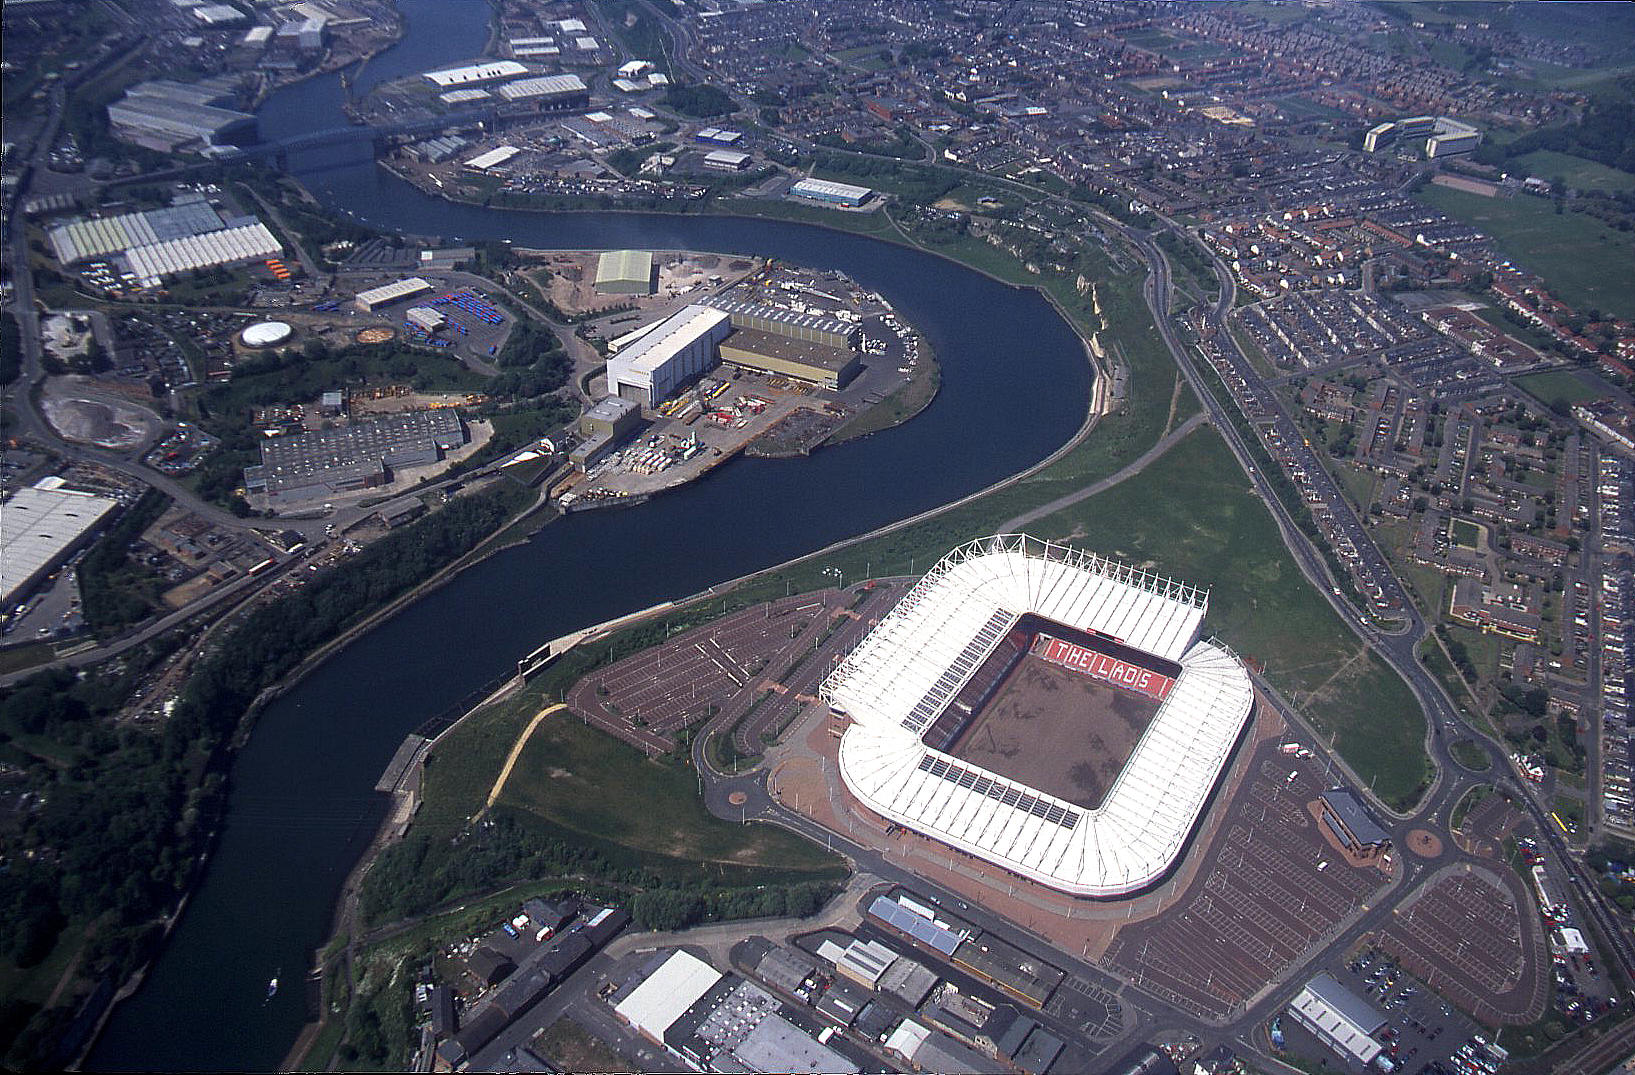 The centre of Sunderland with the football stadium in 2004